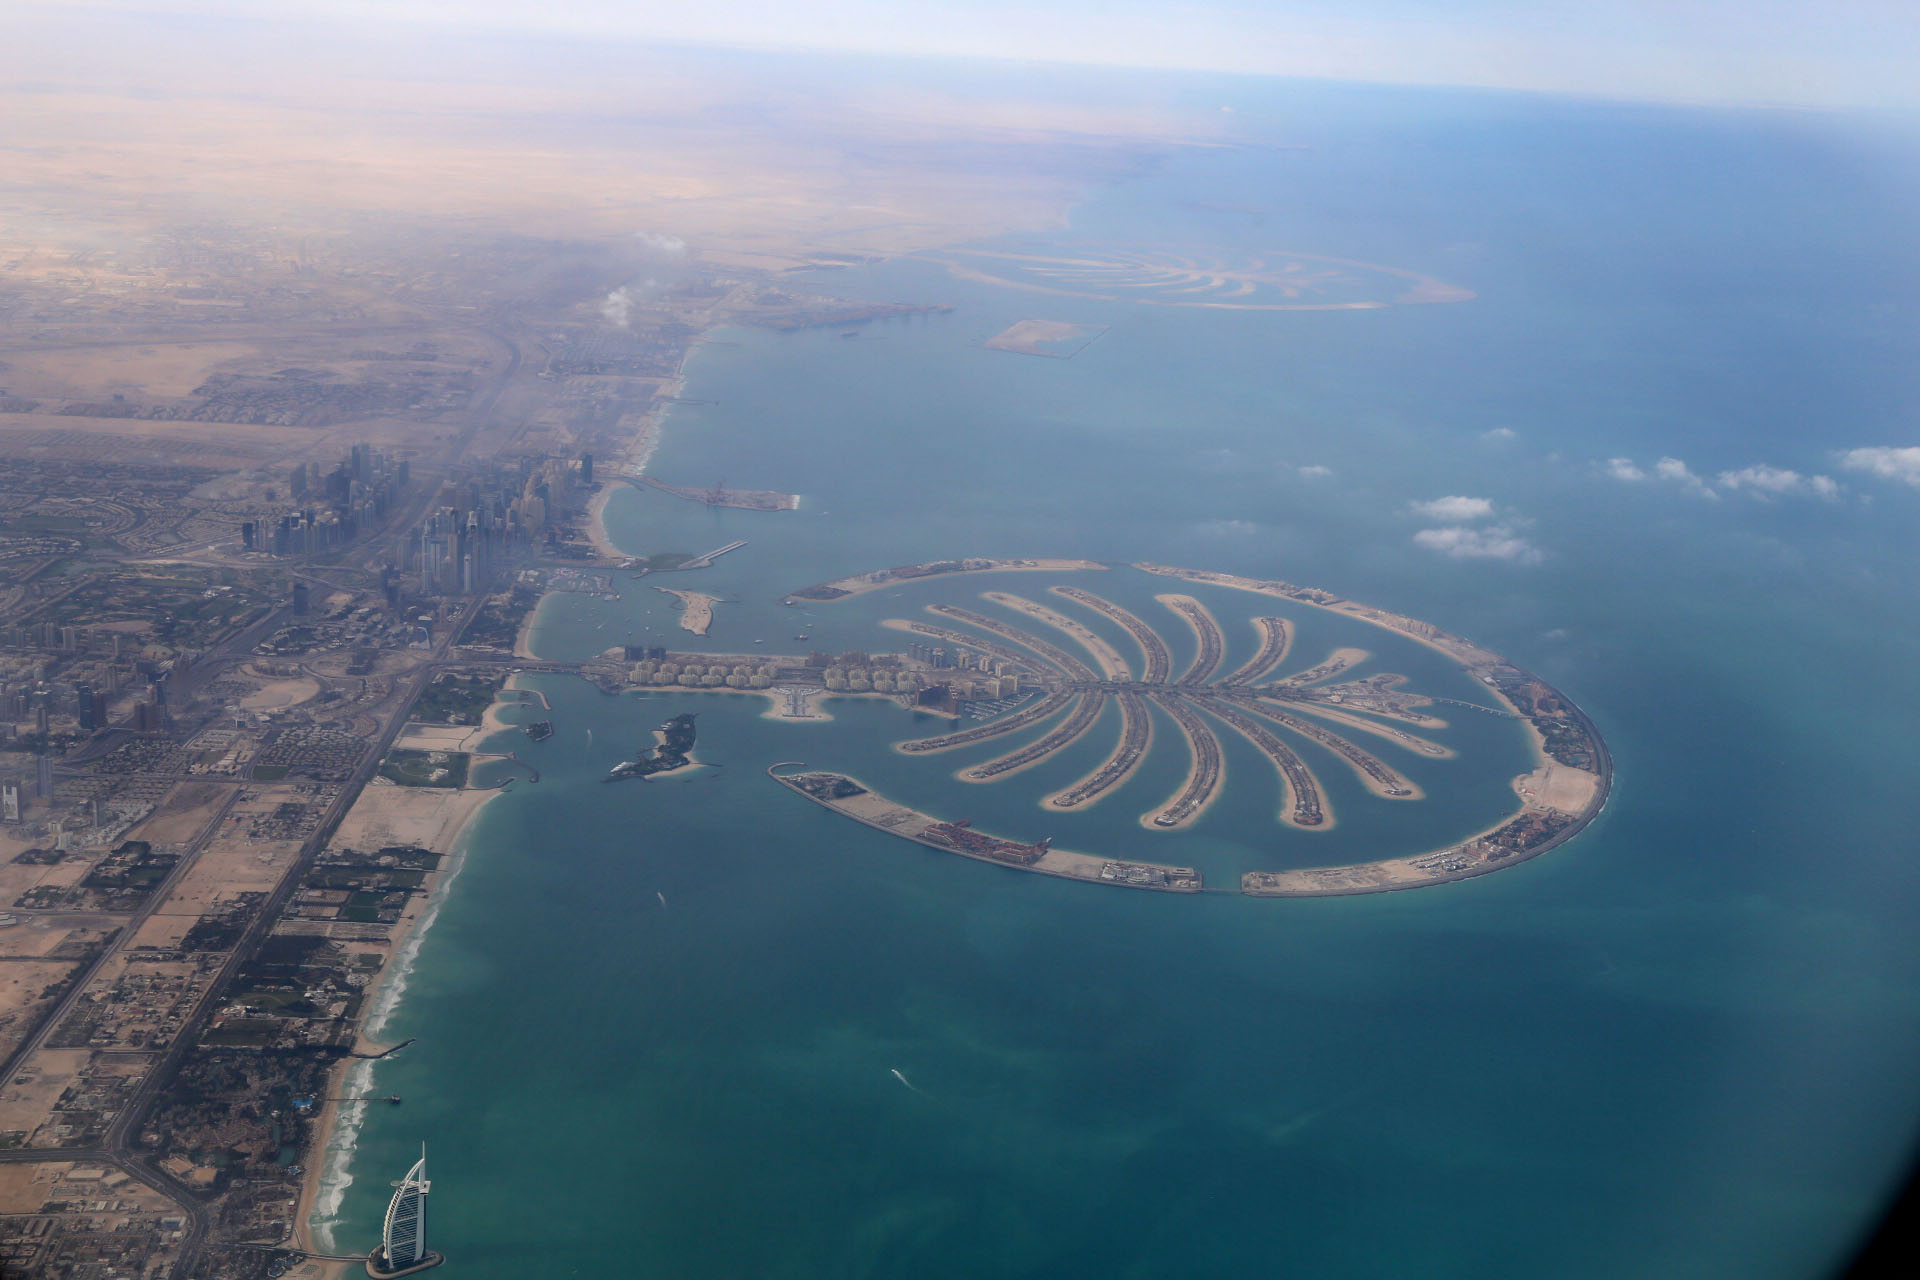 Fitxer:Dubai Palm Islands from the air.jpg - Viquipèdia, l ...